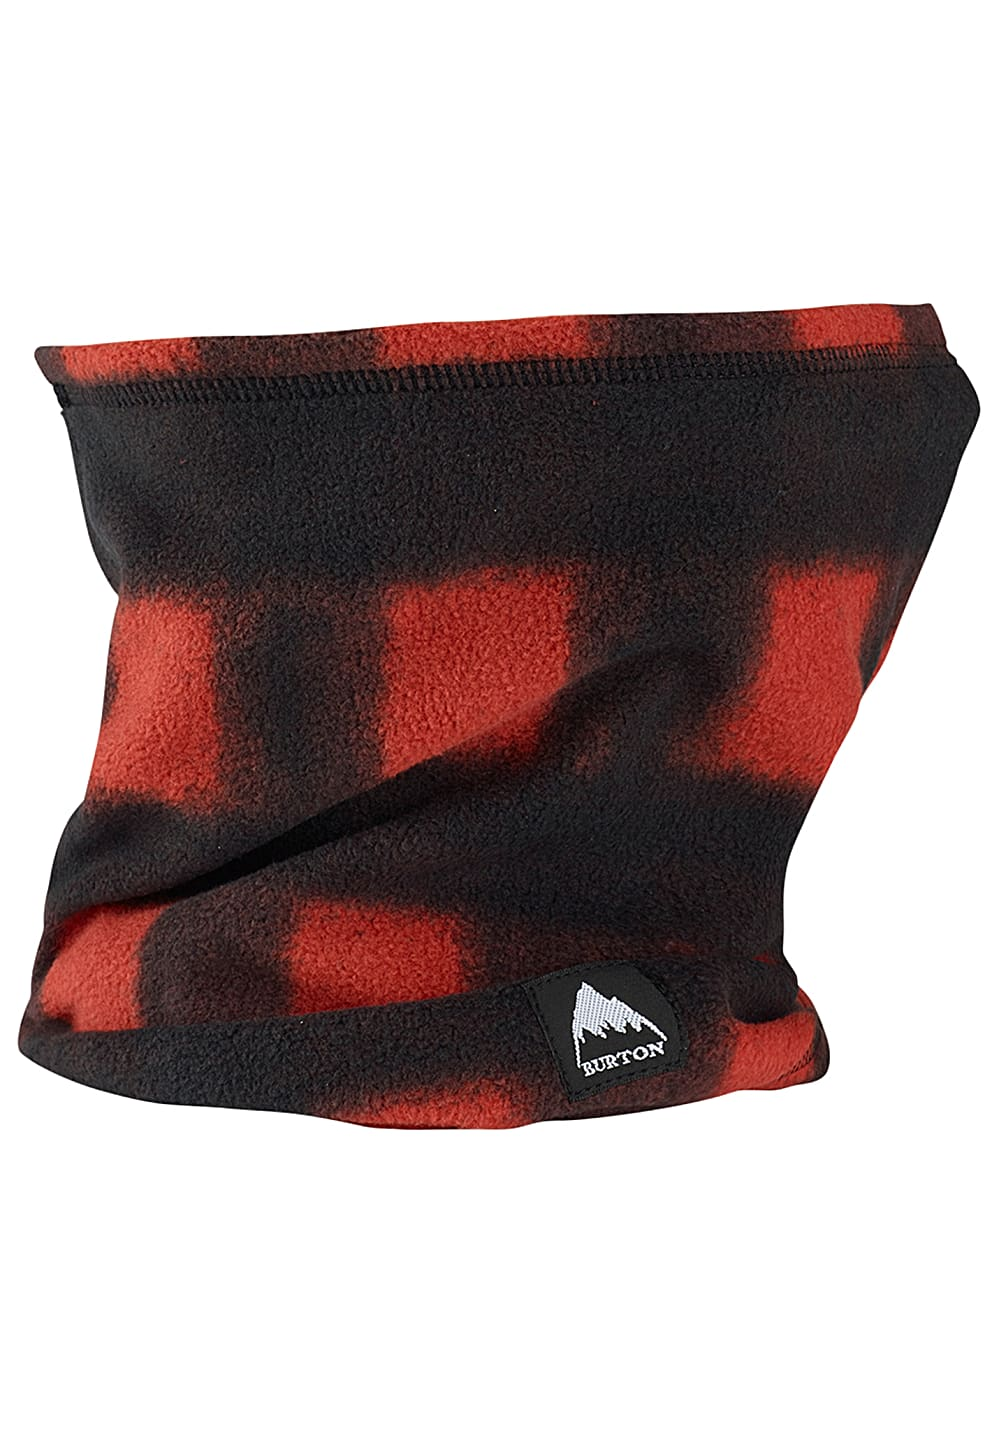 Boysaccessoires - Burton Neckwarmer Neckwarmer Karo - Onlineshop Planet Sports